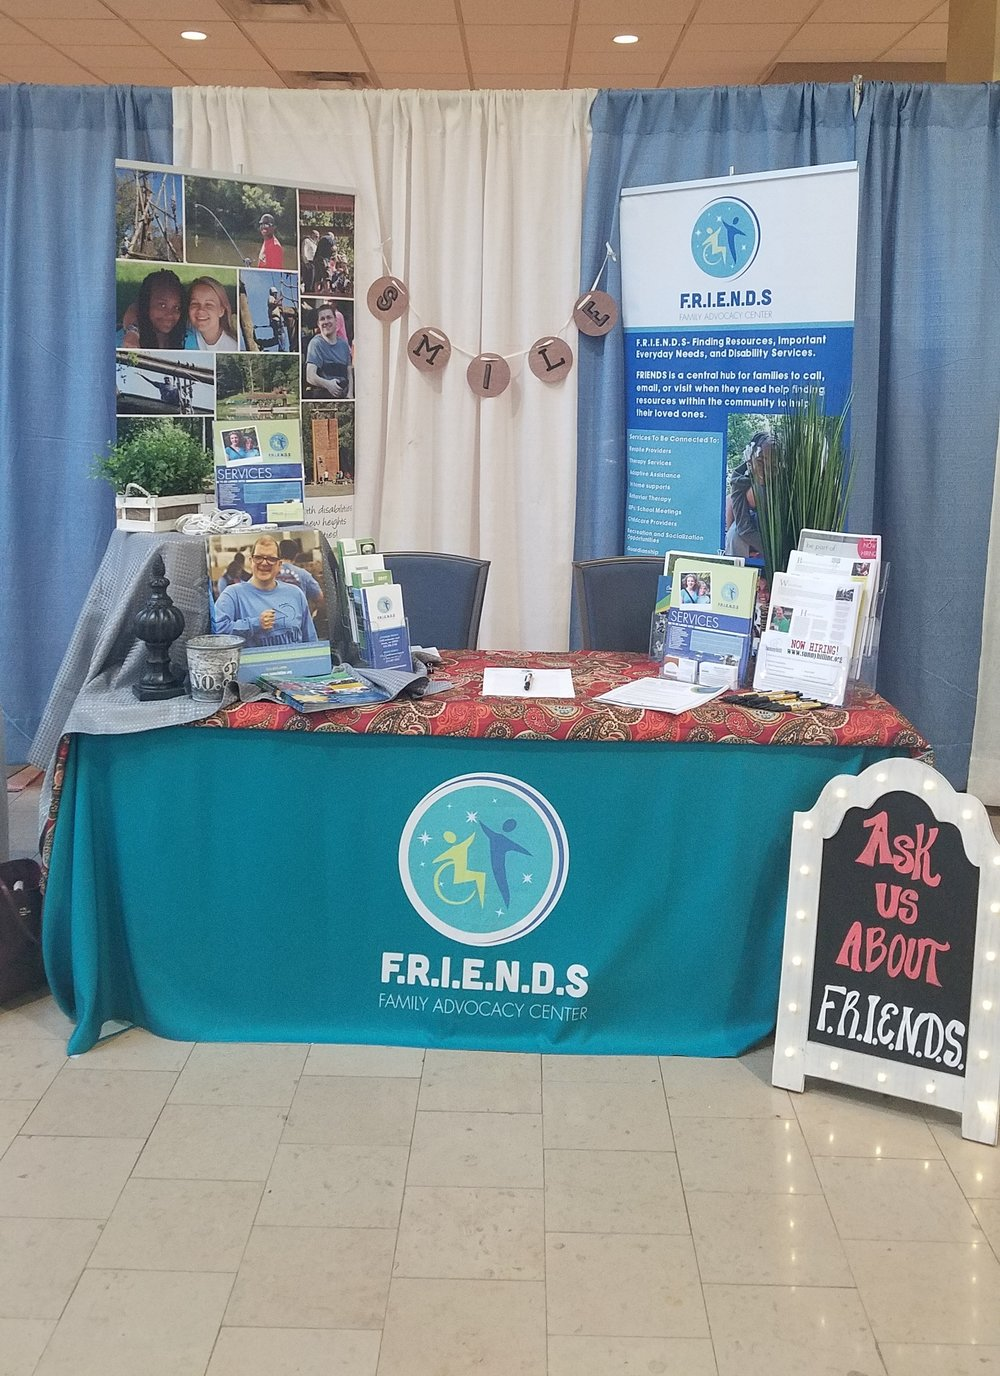 F.R.I.E.N.D.S booth at an expo